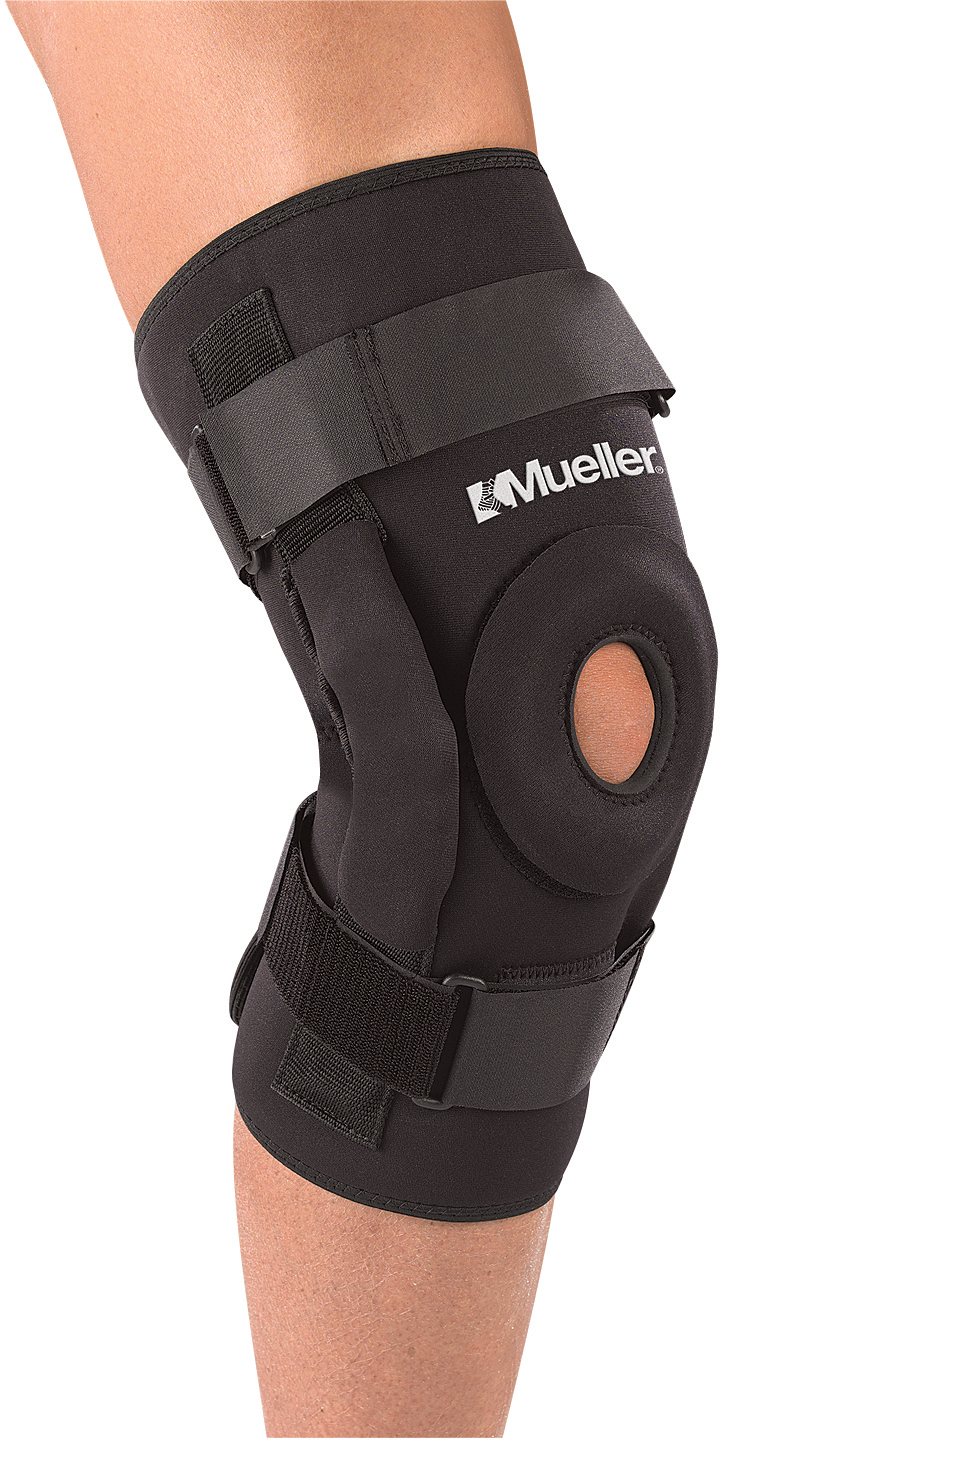 pro-level-hinged-knee-brace-deluxe-lg-5333lg-74676533339-lr.jpg